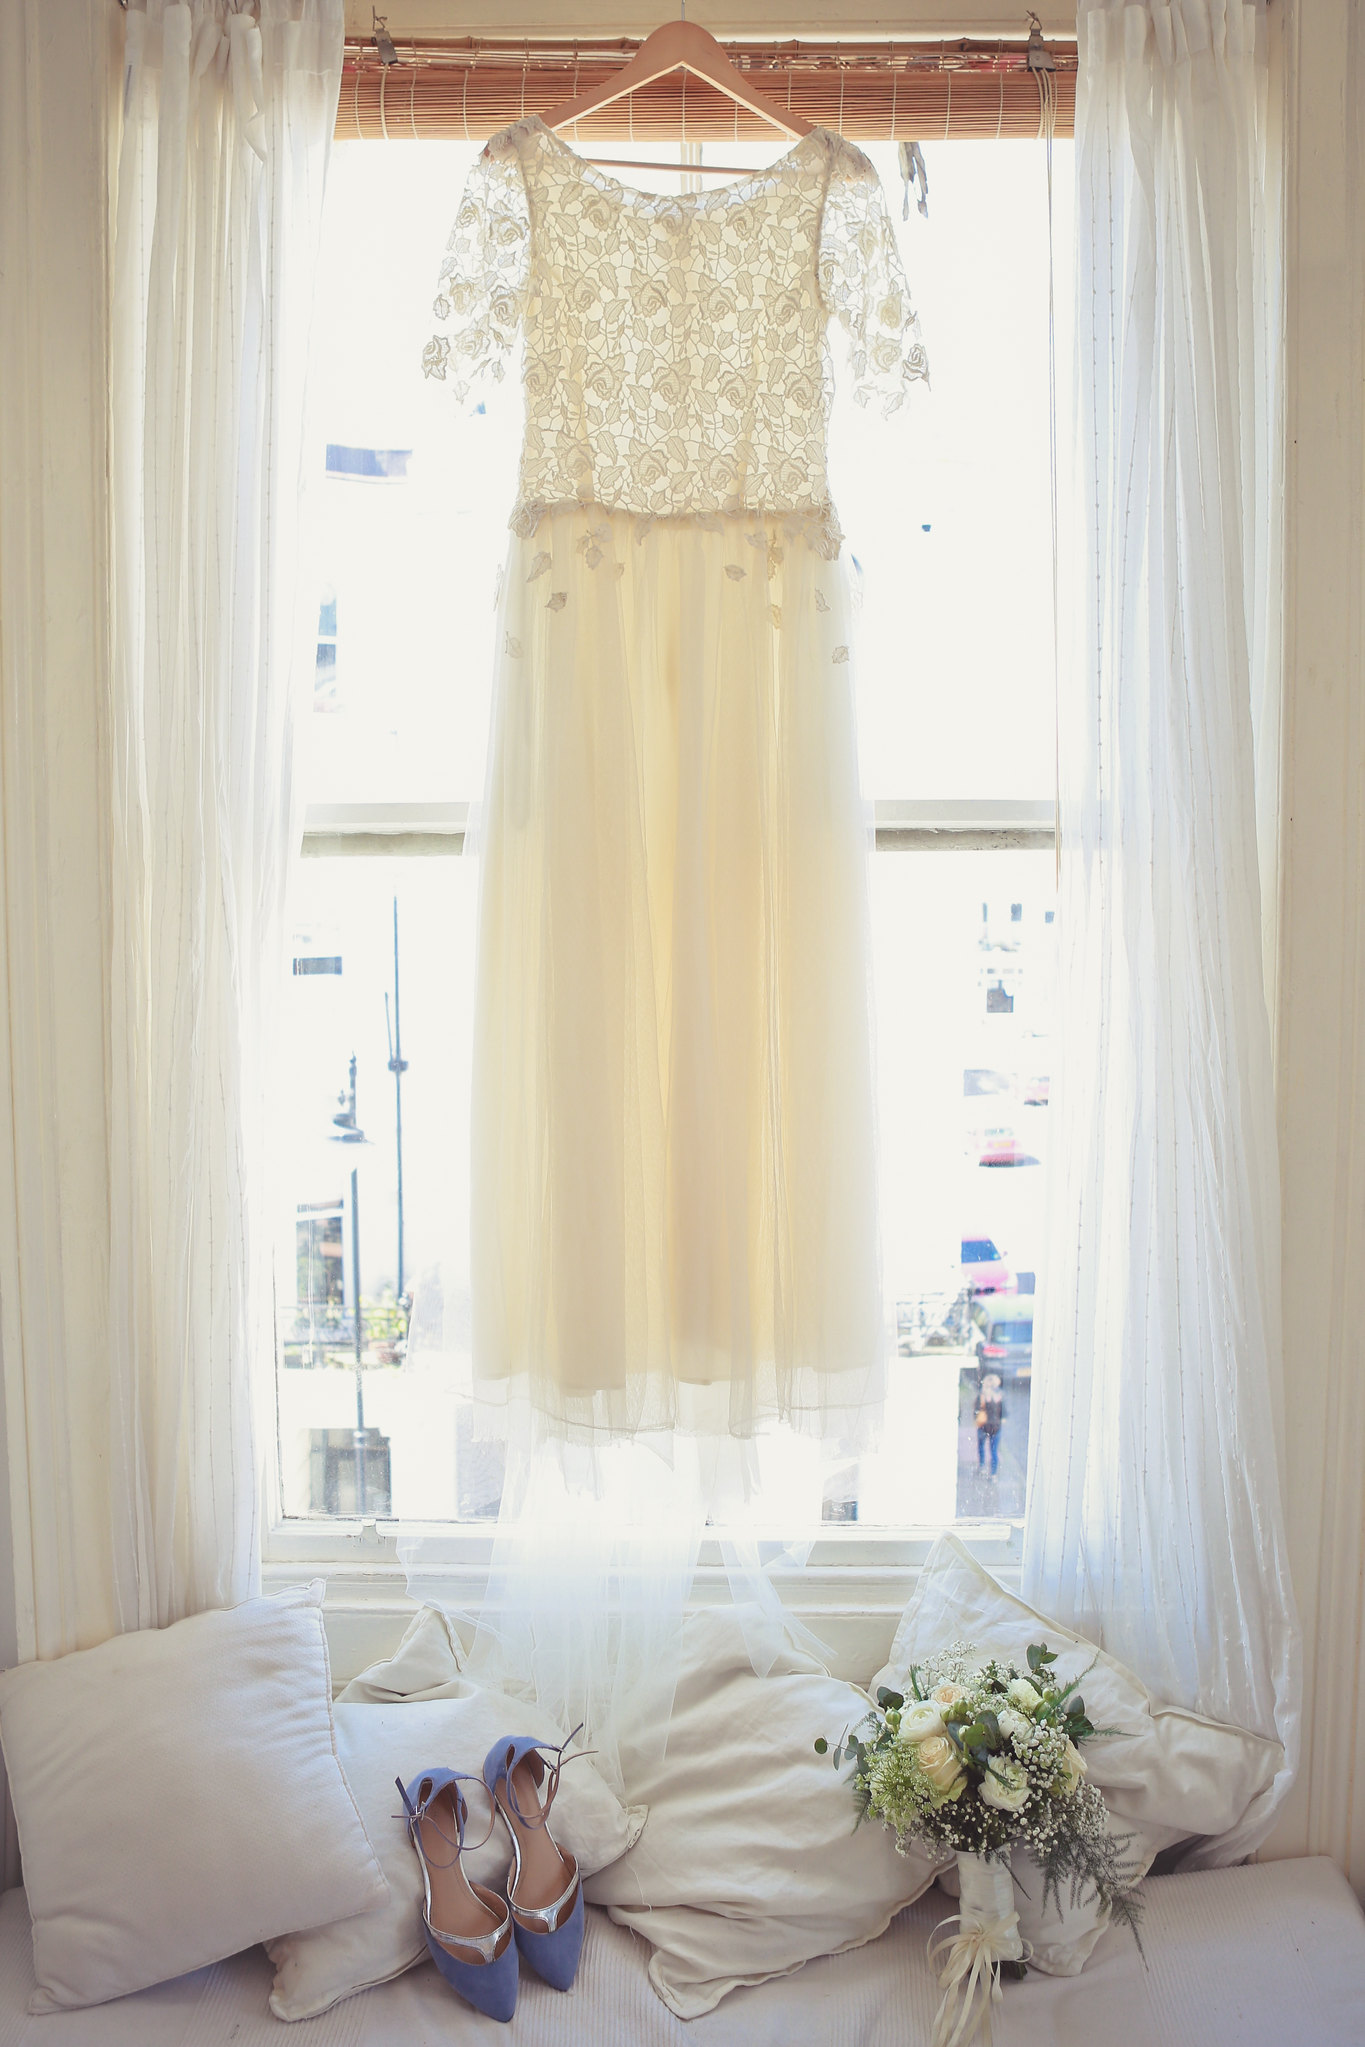 Tulle and Lace wedding dress hanging in a window